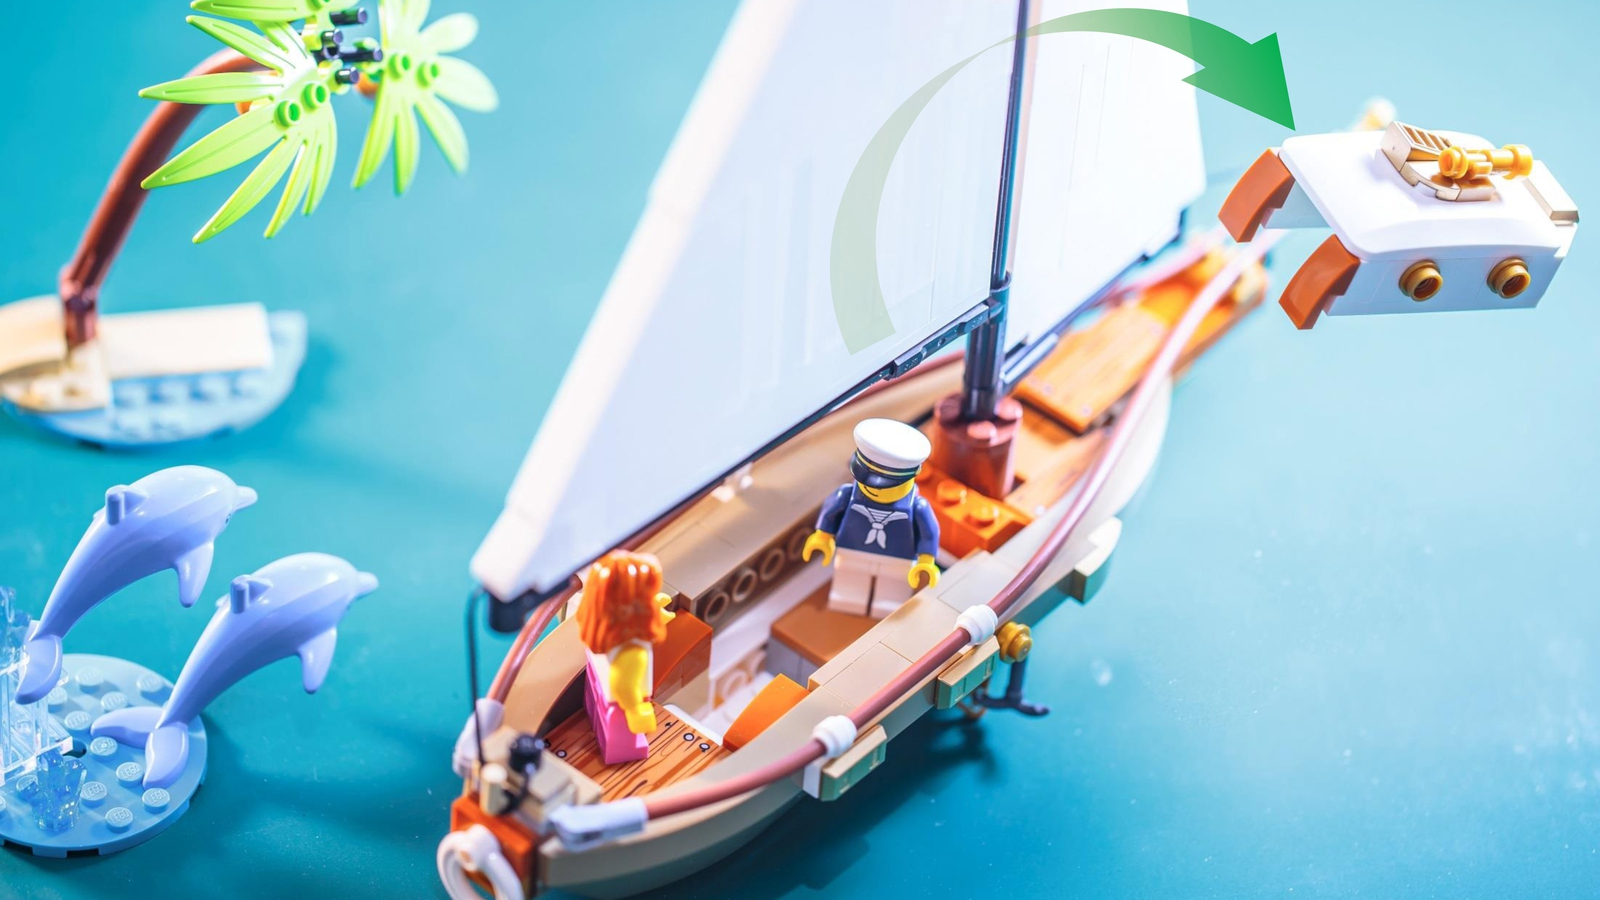 lego-ideas-sailing-ship-adventure-yc-solo-3 zusammengebaut.com